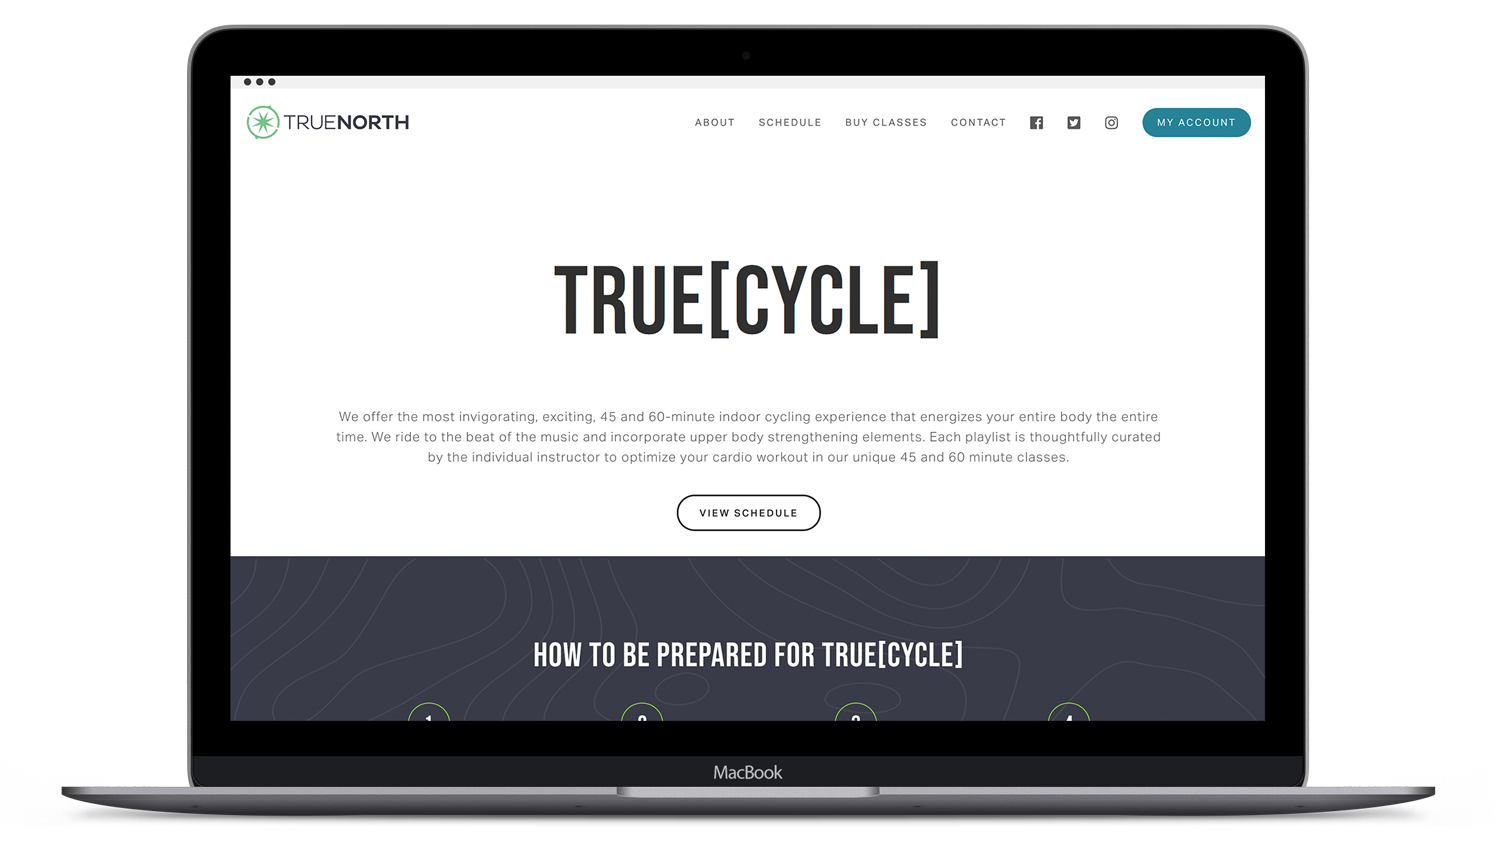 Ian Tucker - TrueNorth_Cycle_Mockup.png